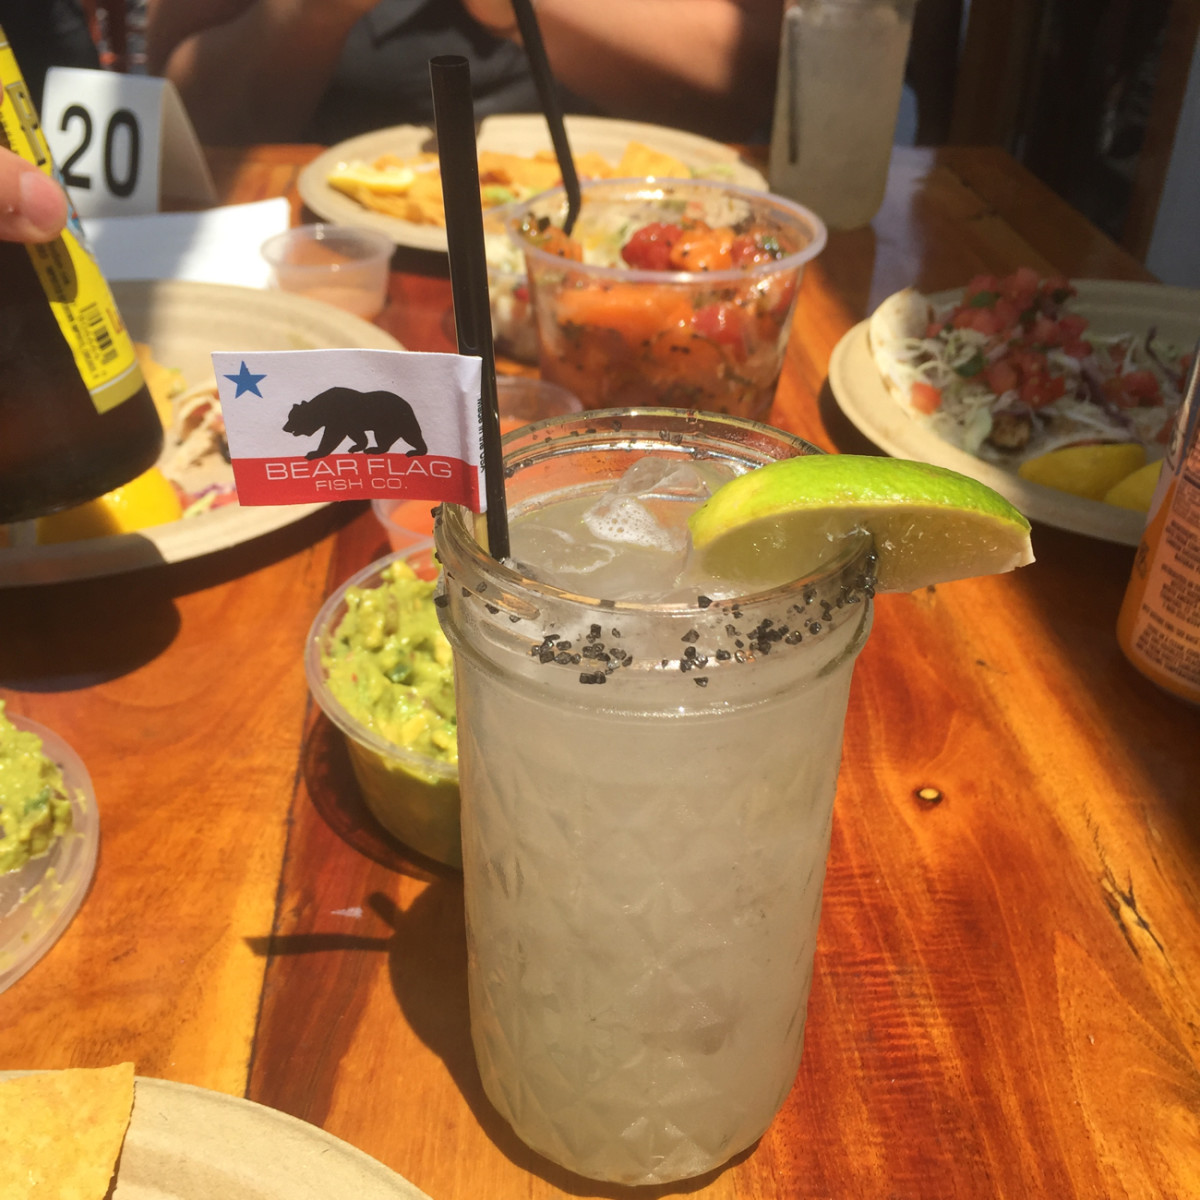 Margaritas to kick off the weekend